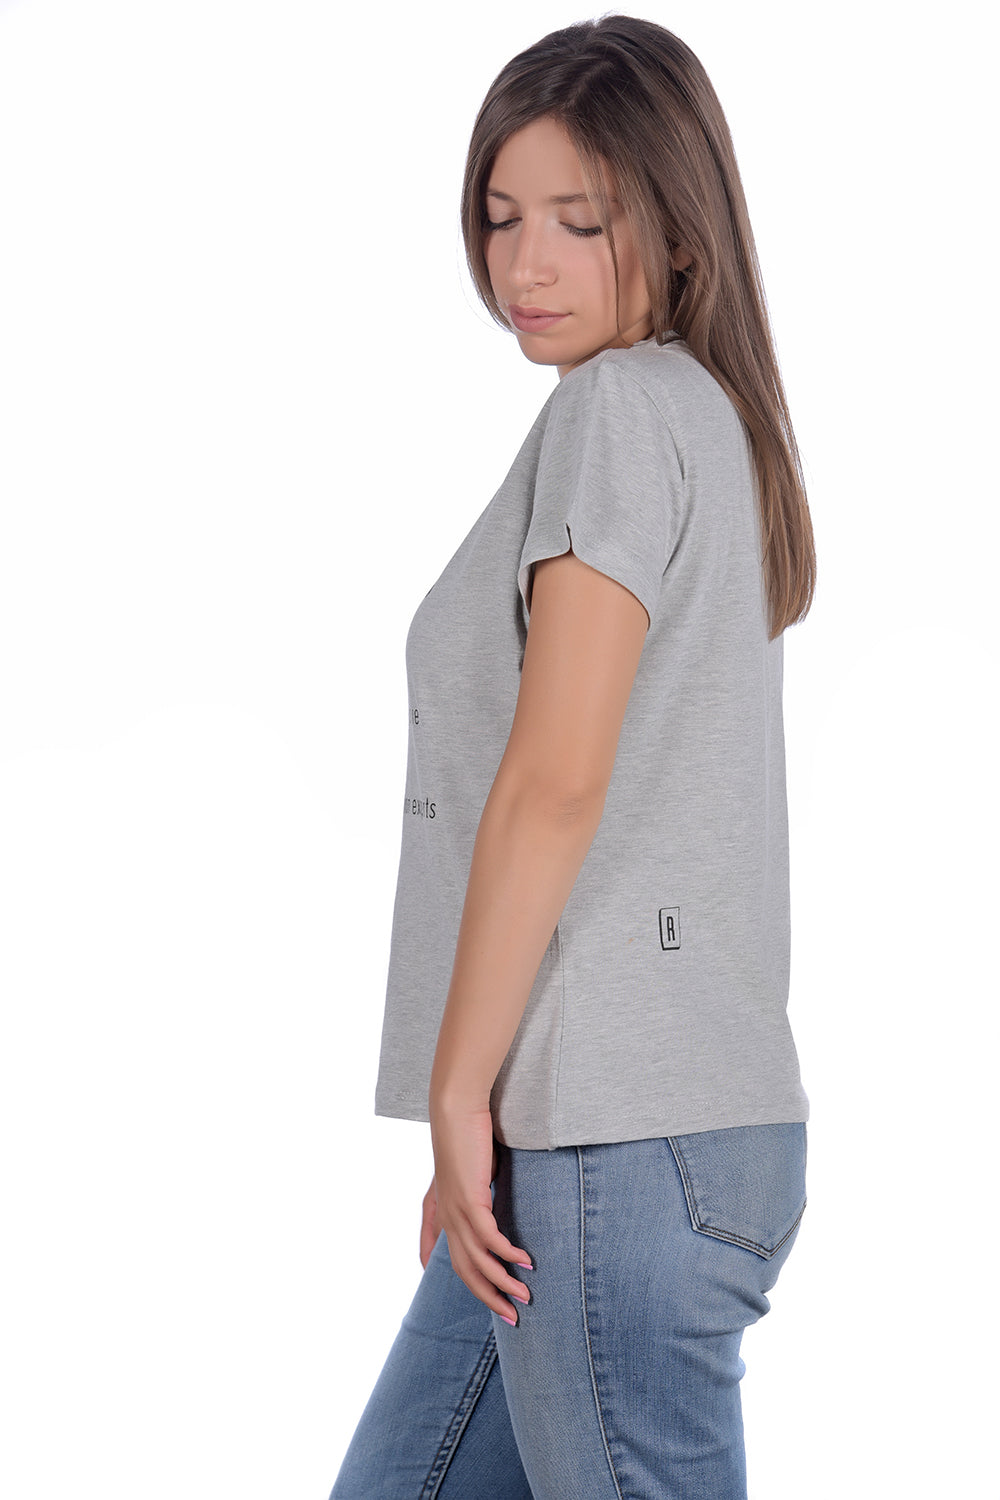 The Rectified Short Sleeve Tee